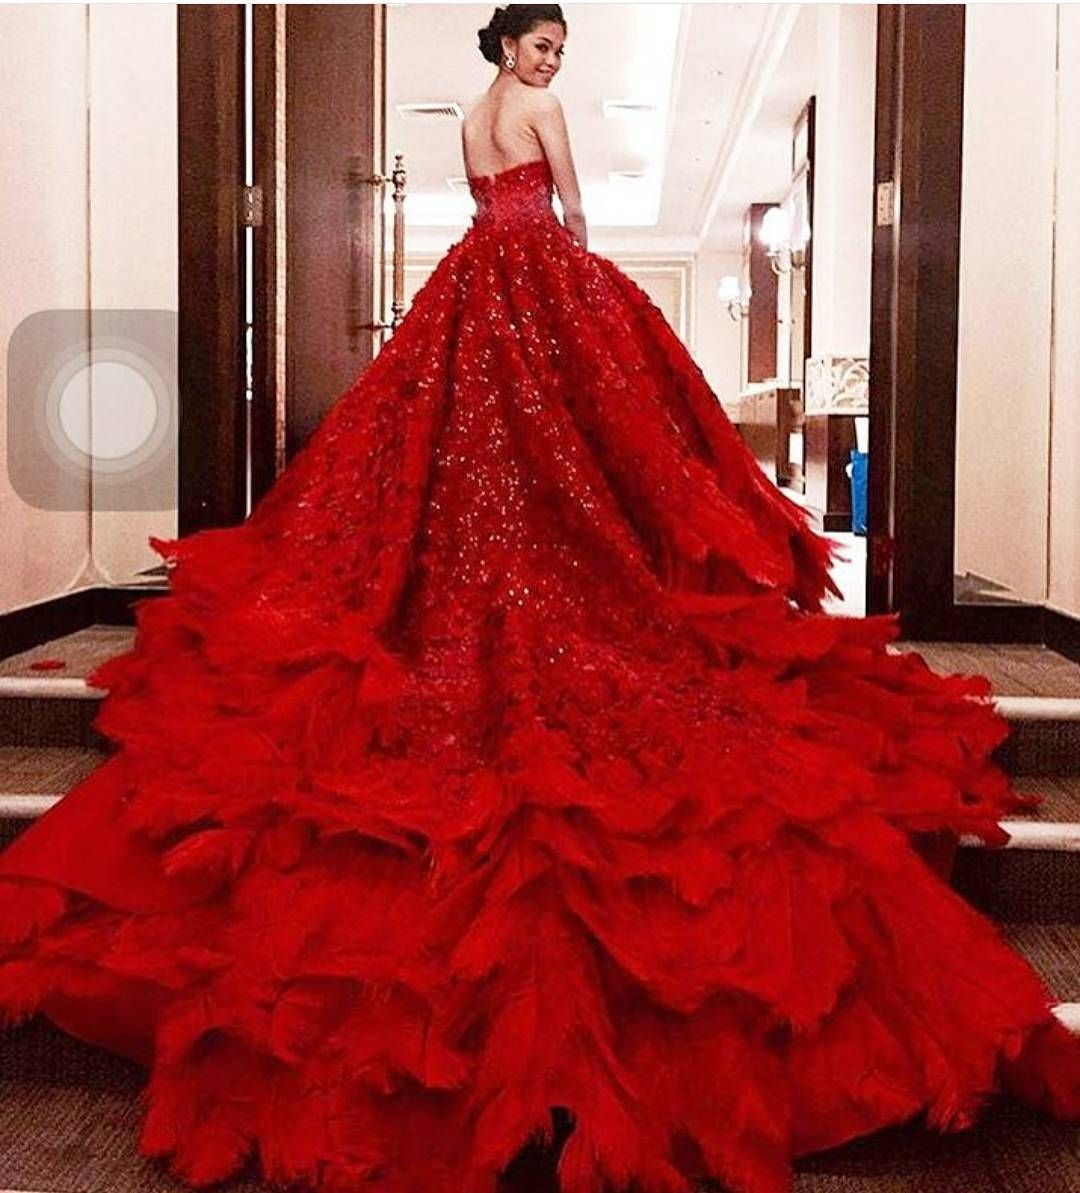 Pin by Joey Barragan on Red | Pinterest | Gowns, Big and Instagram